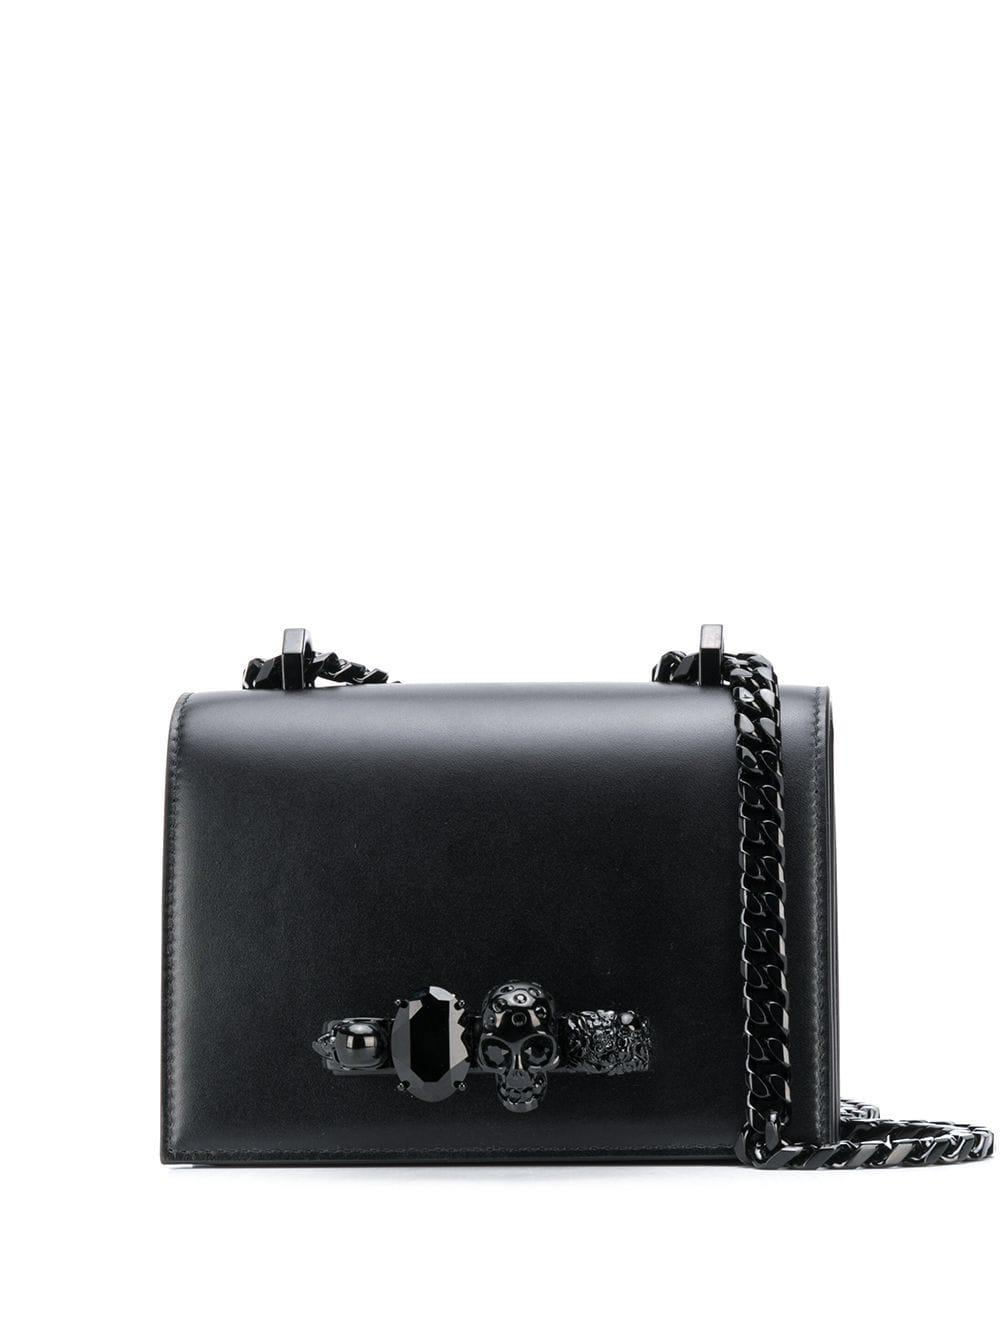 Leather Small Jeweled Handbag With Chain